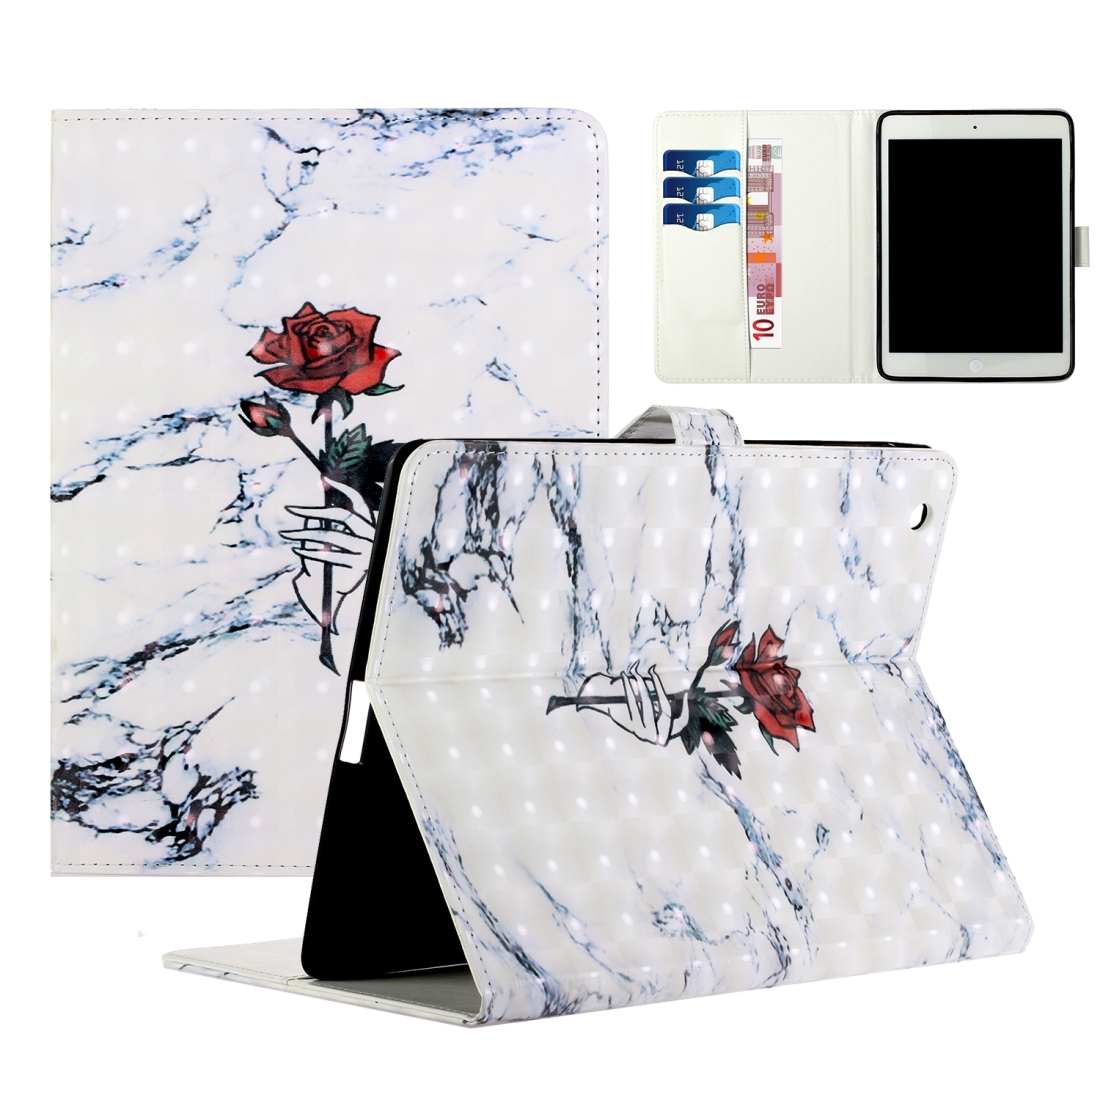 iPad 2 Case Fits iPad 2,3,4, With A Artsy Leather Design with Sleeve & Auto Sleep (Marble Rose)